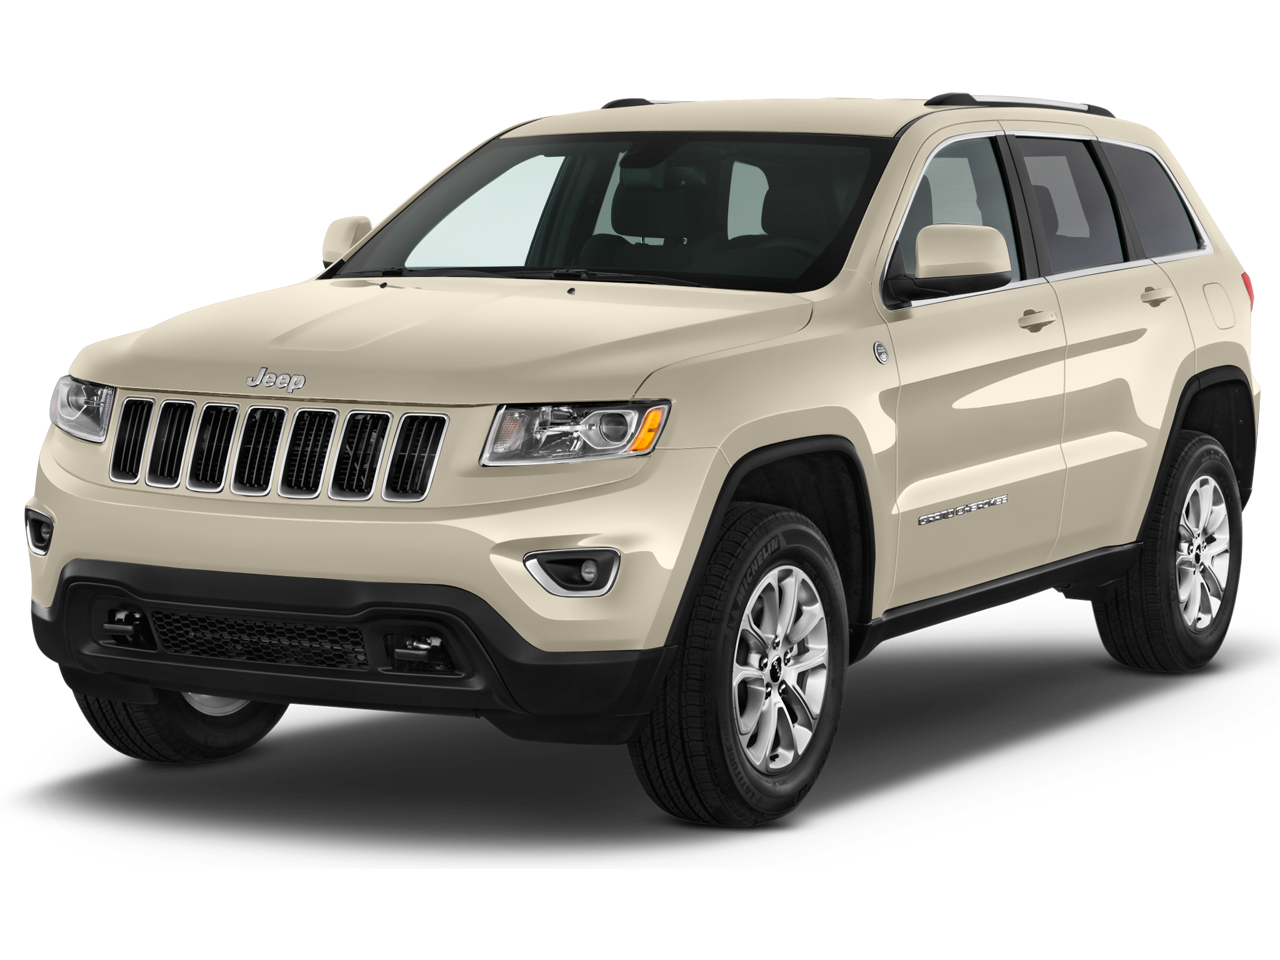 used 2015 jeep grand cherokee laredo near lexington sc jim hudson toyota. Black Bedroom Furniture Sets. Home Design Ideas